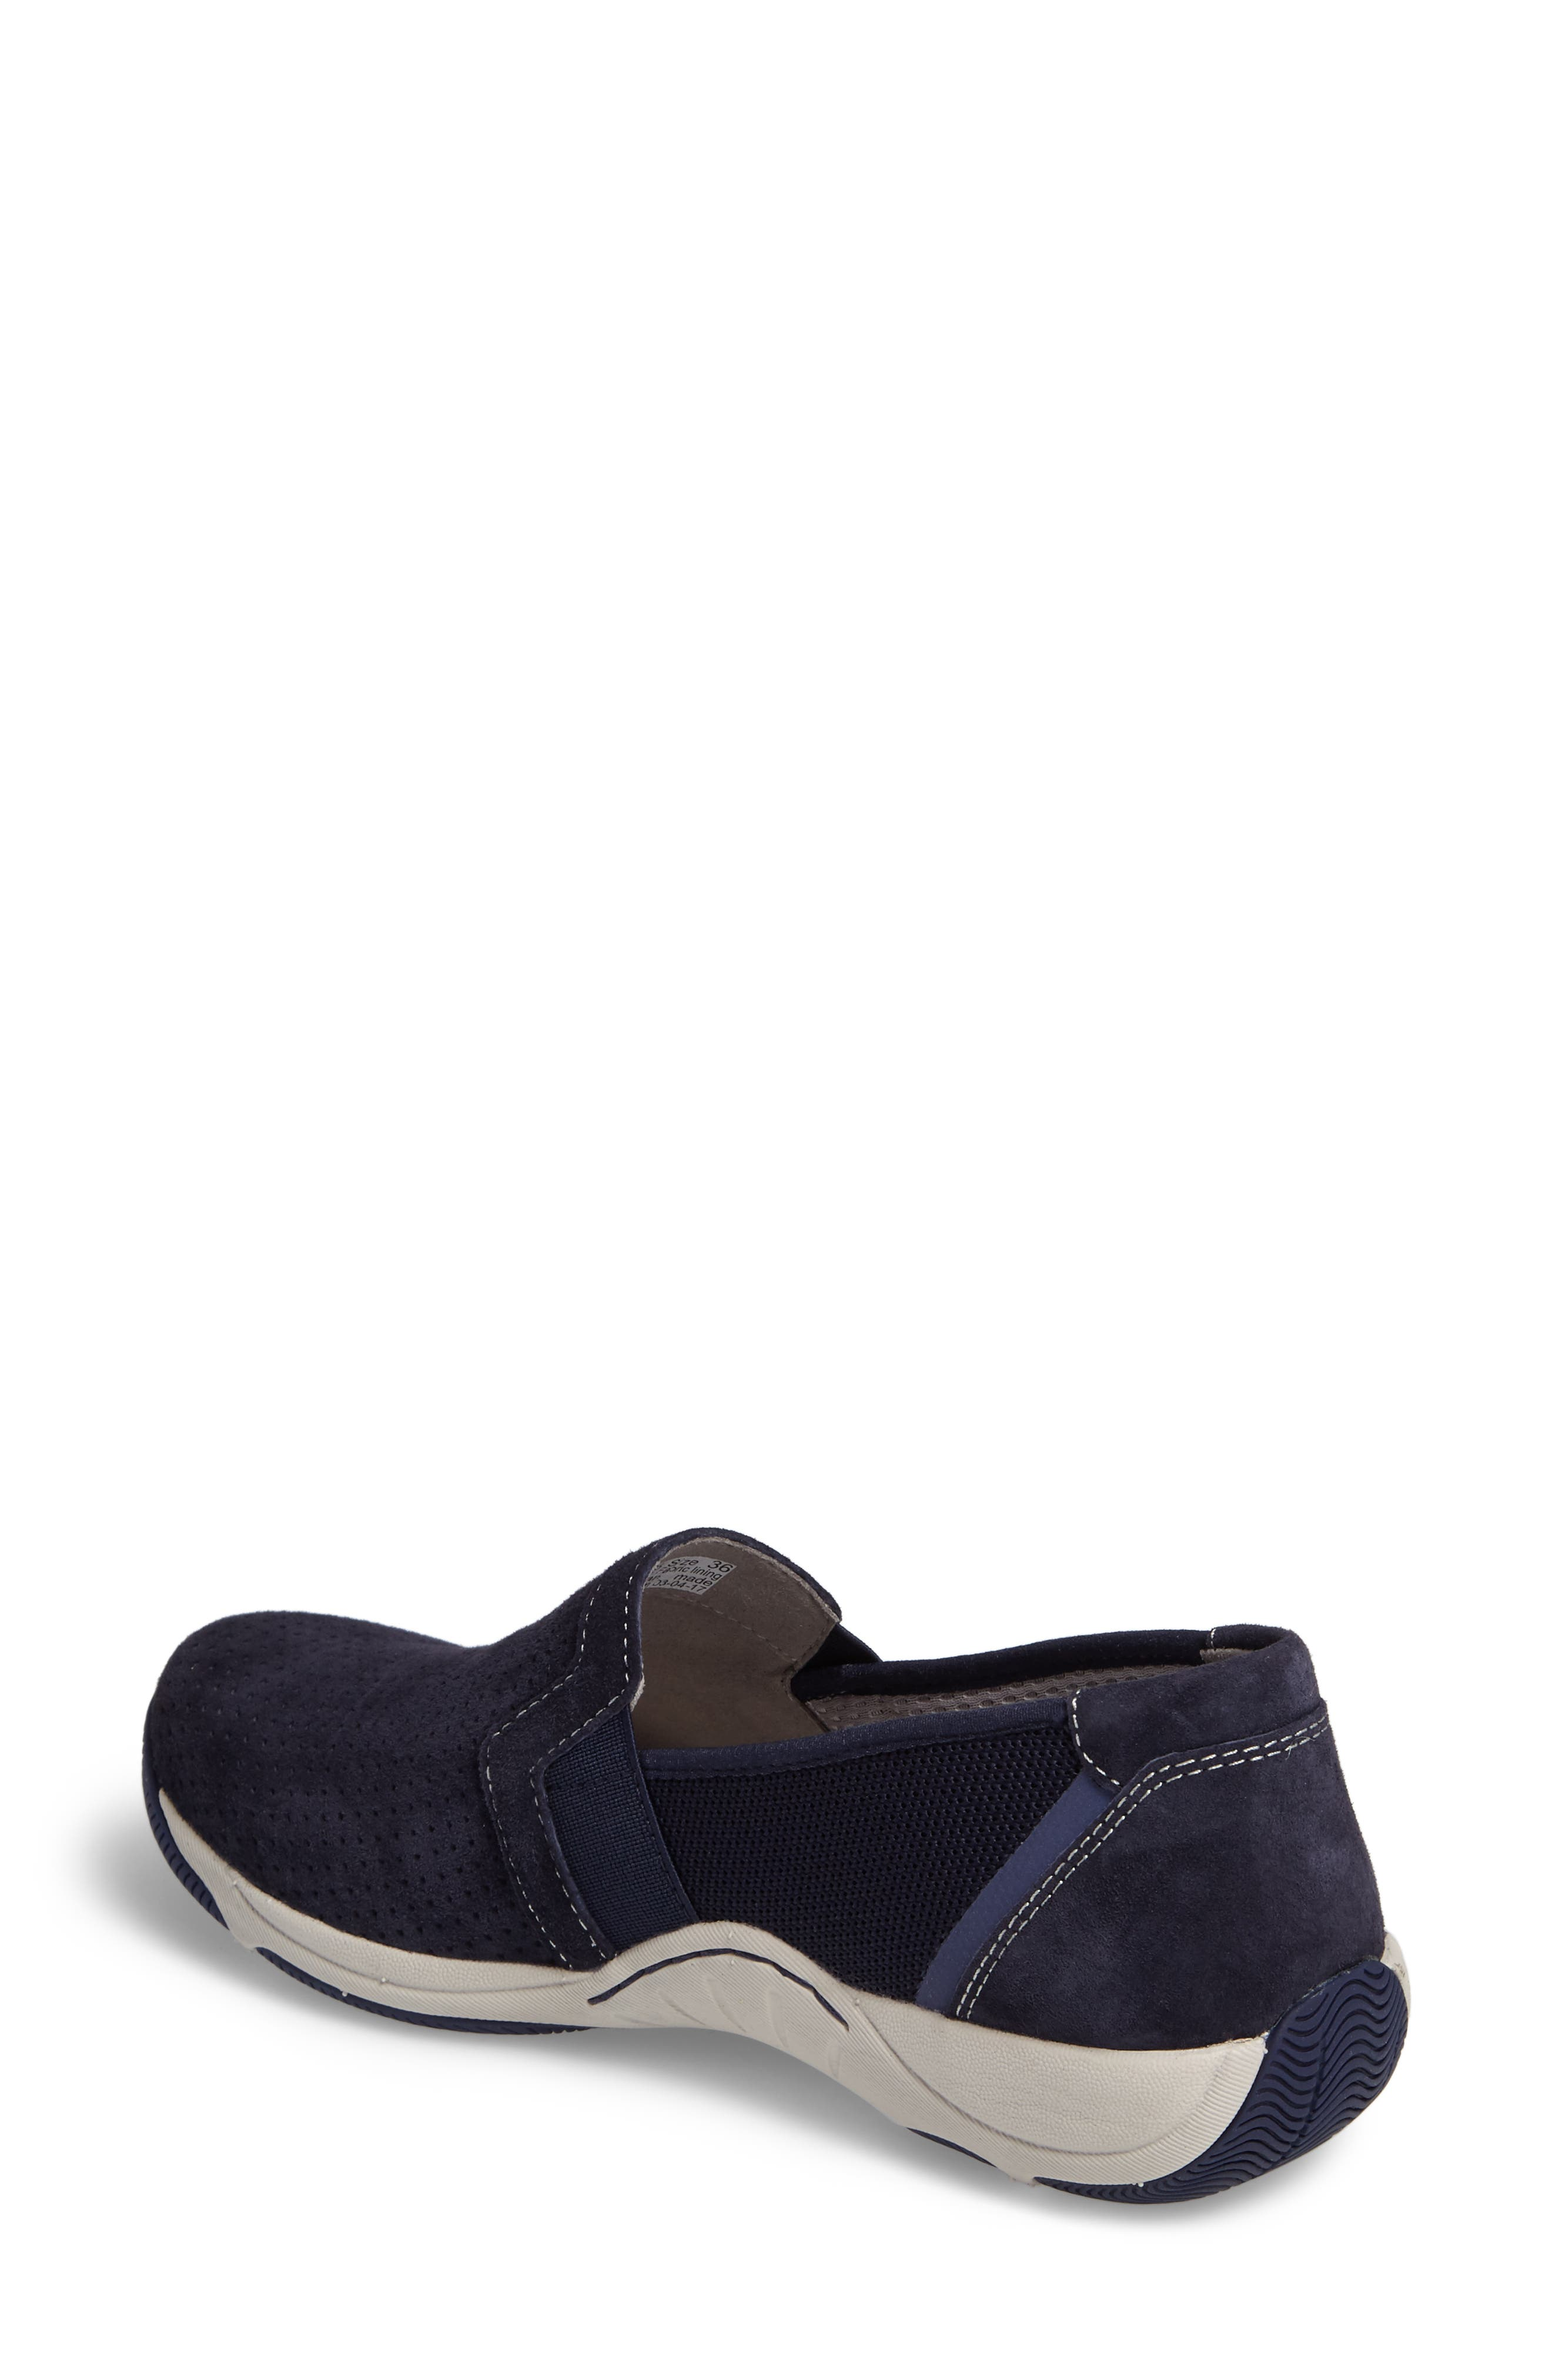 Halifax Collection Halle Slip-On Sneaker,                             Alternate thumbnail 2, color,                             Navy Suede